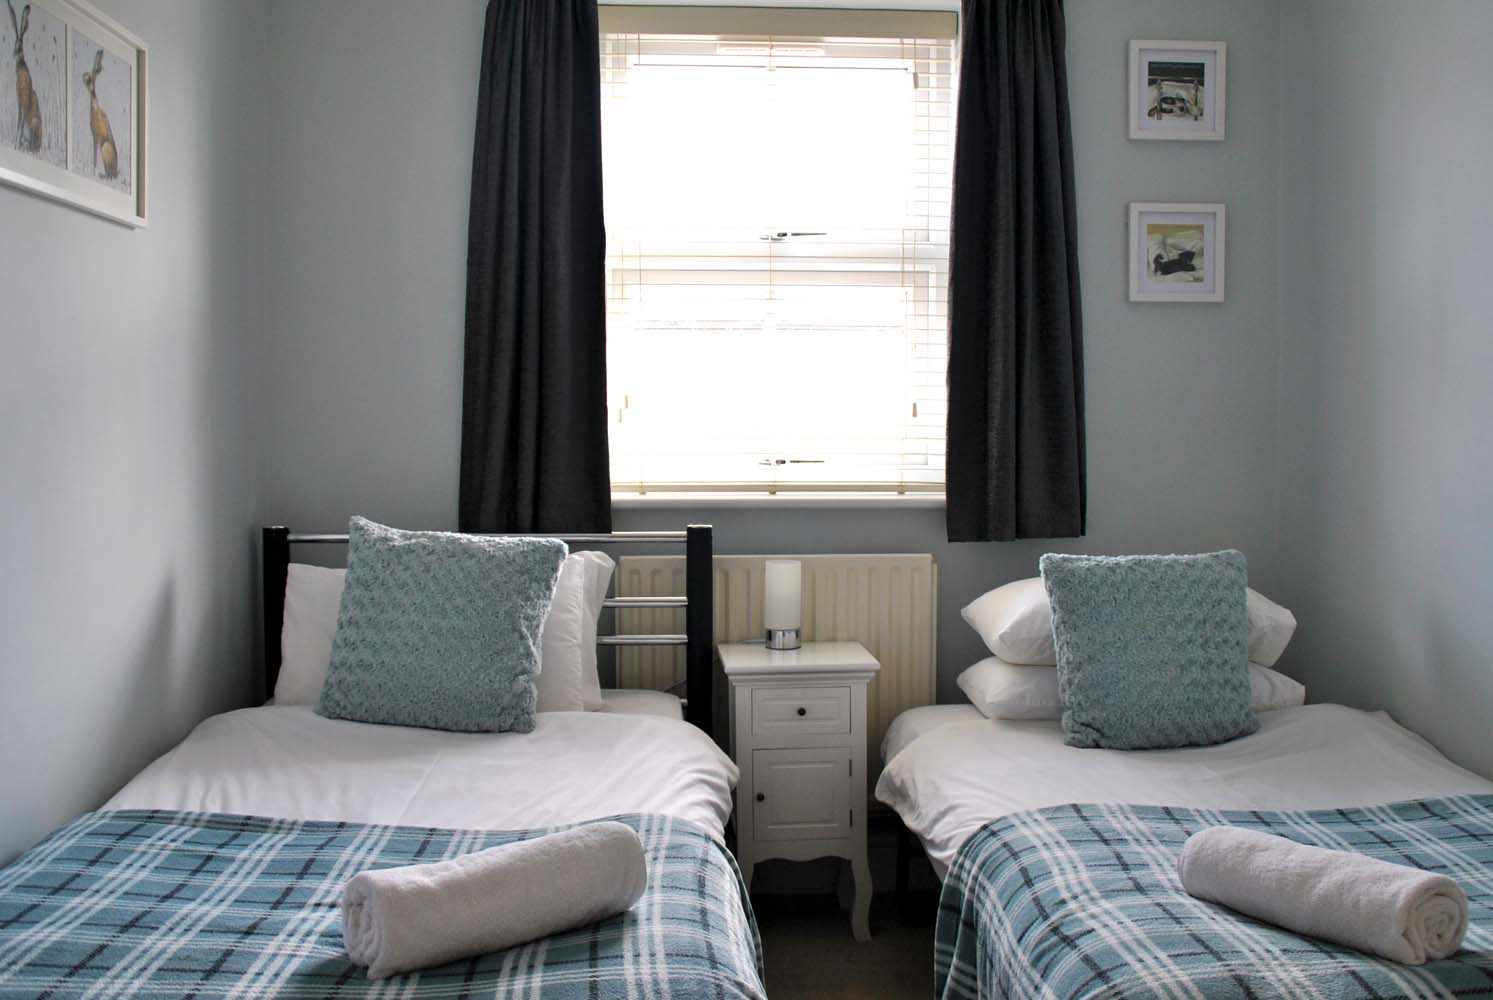 Twin beds at Garfield Place Apartments